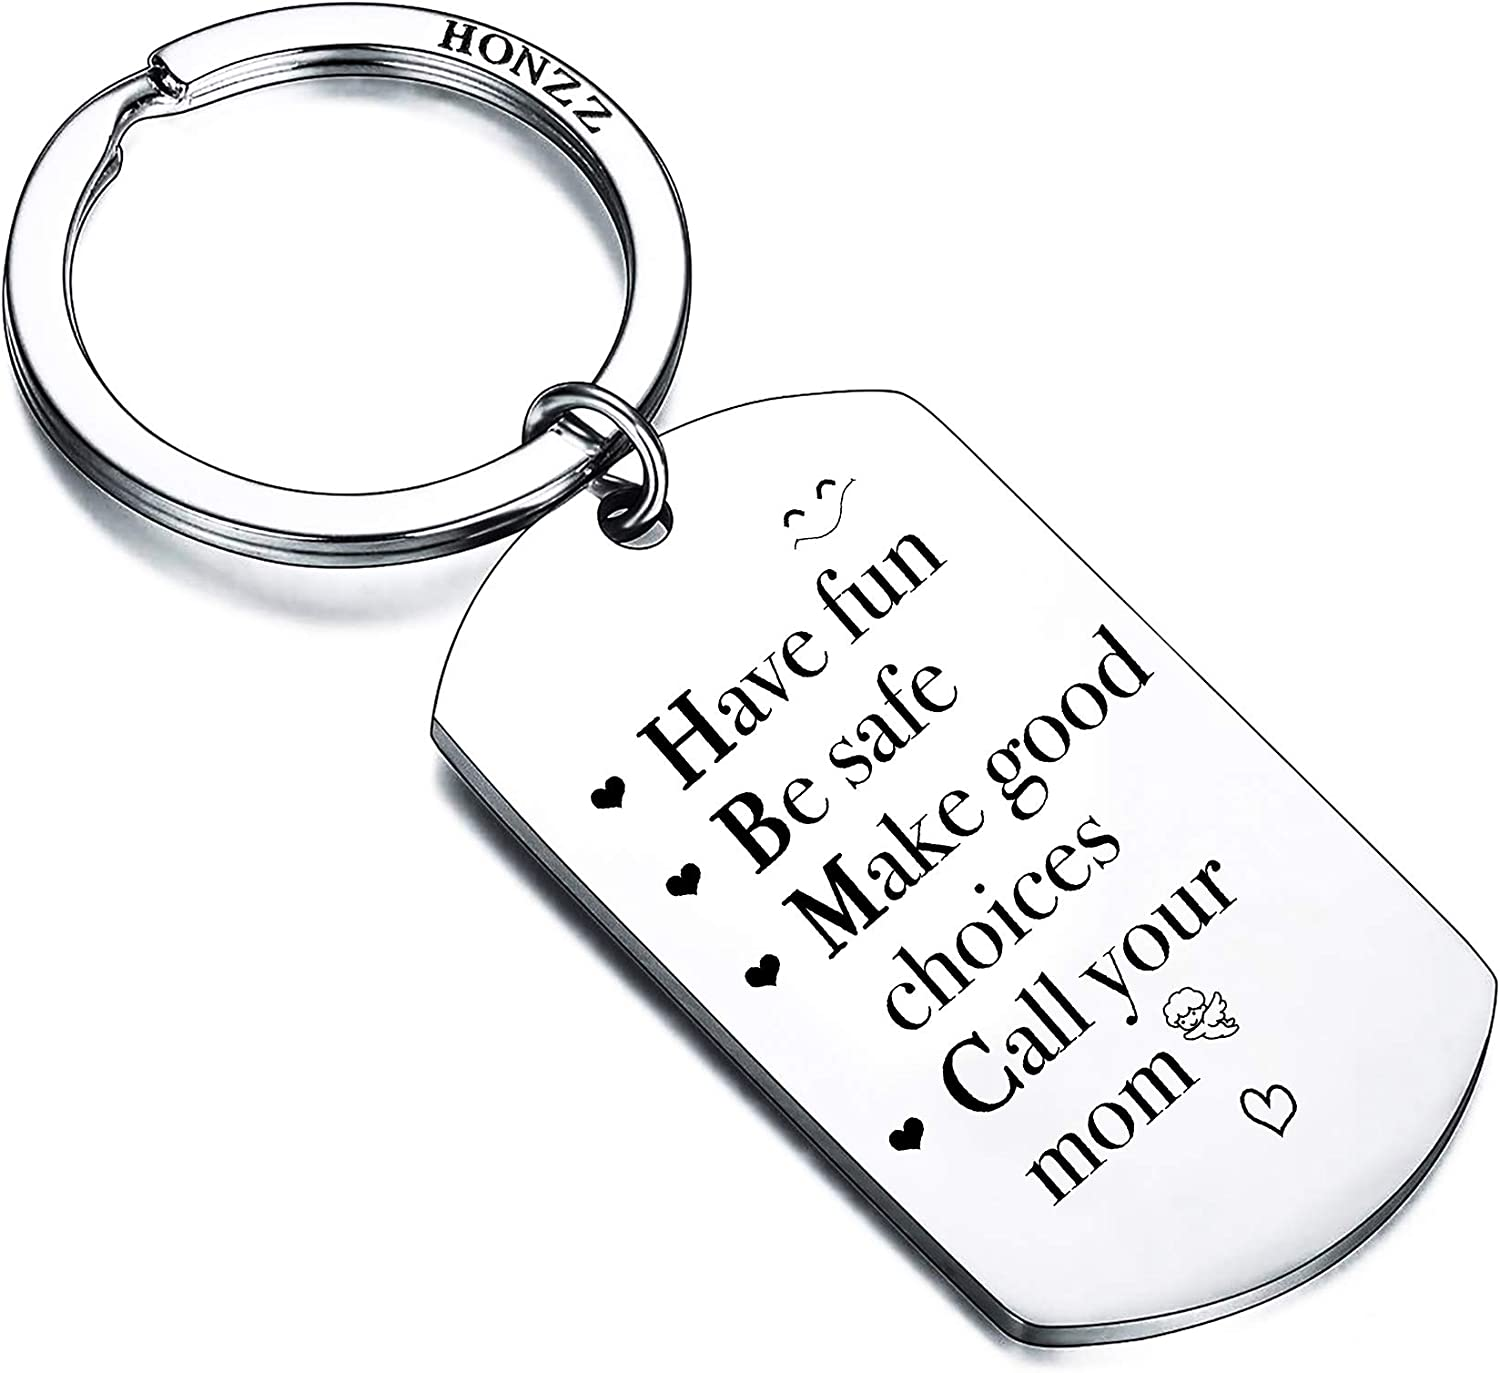 HONZEE Graduation Birthday Gifts for 16 18 Year Old Boys Girls - Have Fun, Be Safe, Make Good Choices and Call Your Mom Gifts for Son Daughter Keychain College Dorm Room Accessories Sign